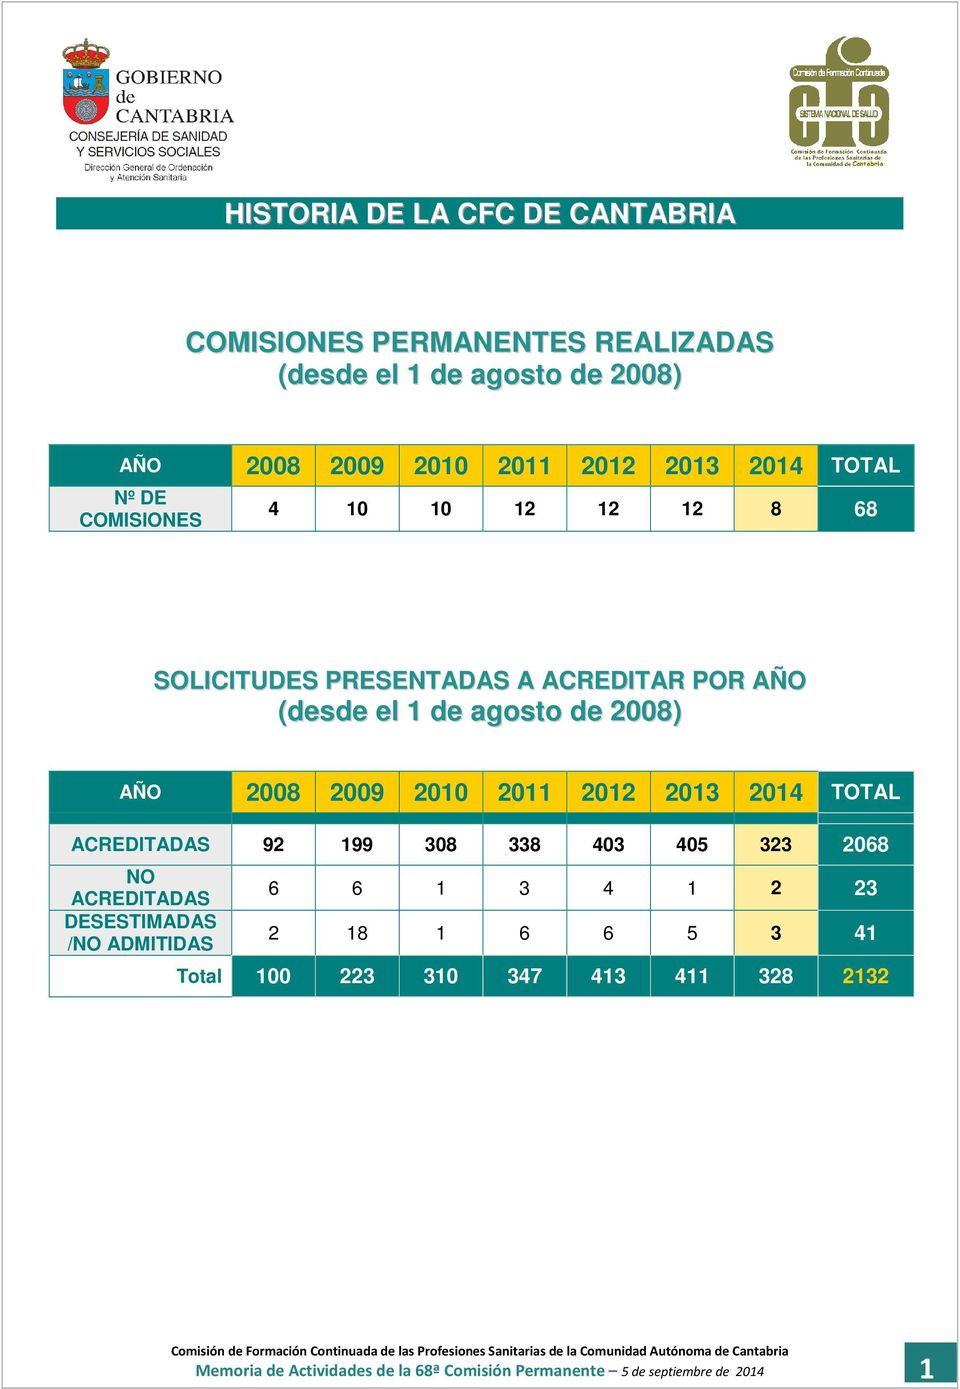 2009 2010 2011 2012 2013 2014 TOTAL ACREDITADAS 92 199 308 338 403 405 323 2068 NO ACREDITADAS DESESTIMADAS /NO ADMITIDAS 6 6 1 3 4 1